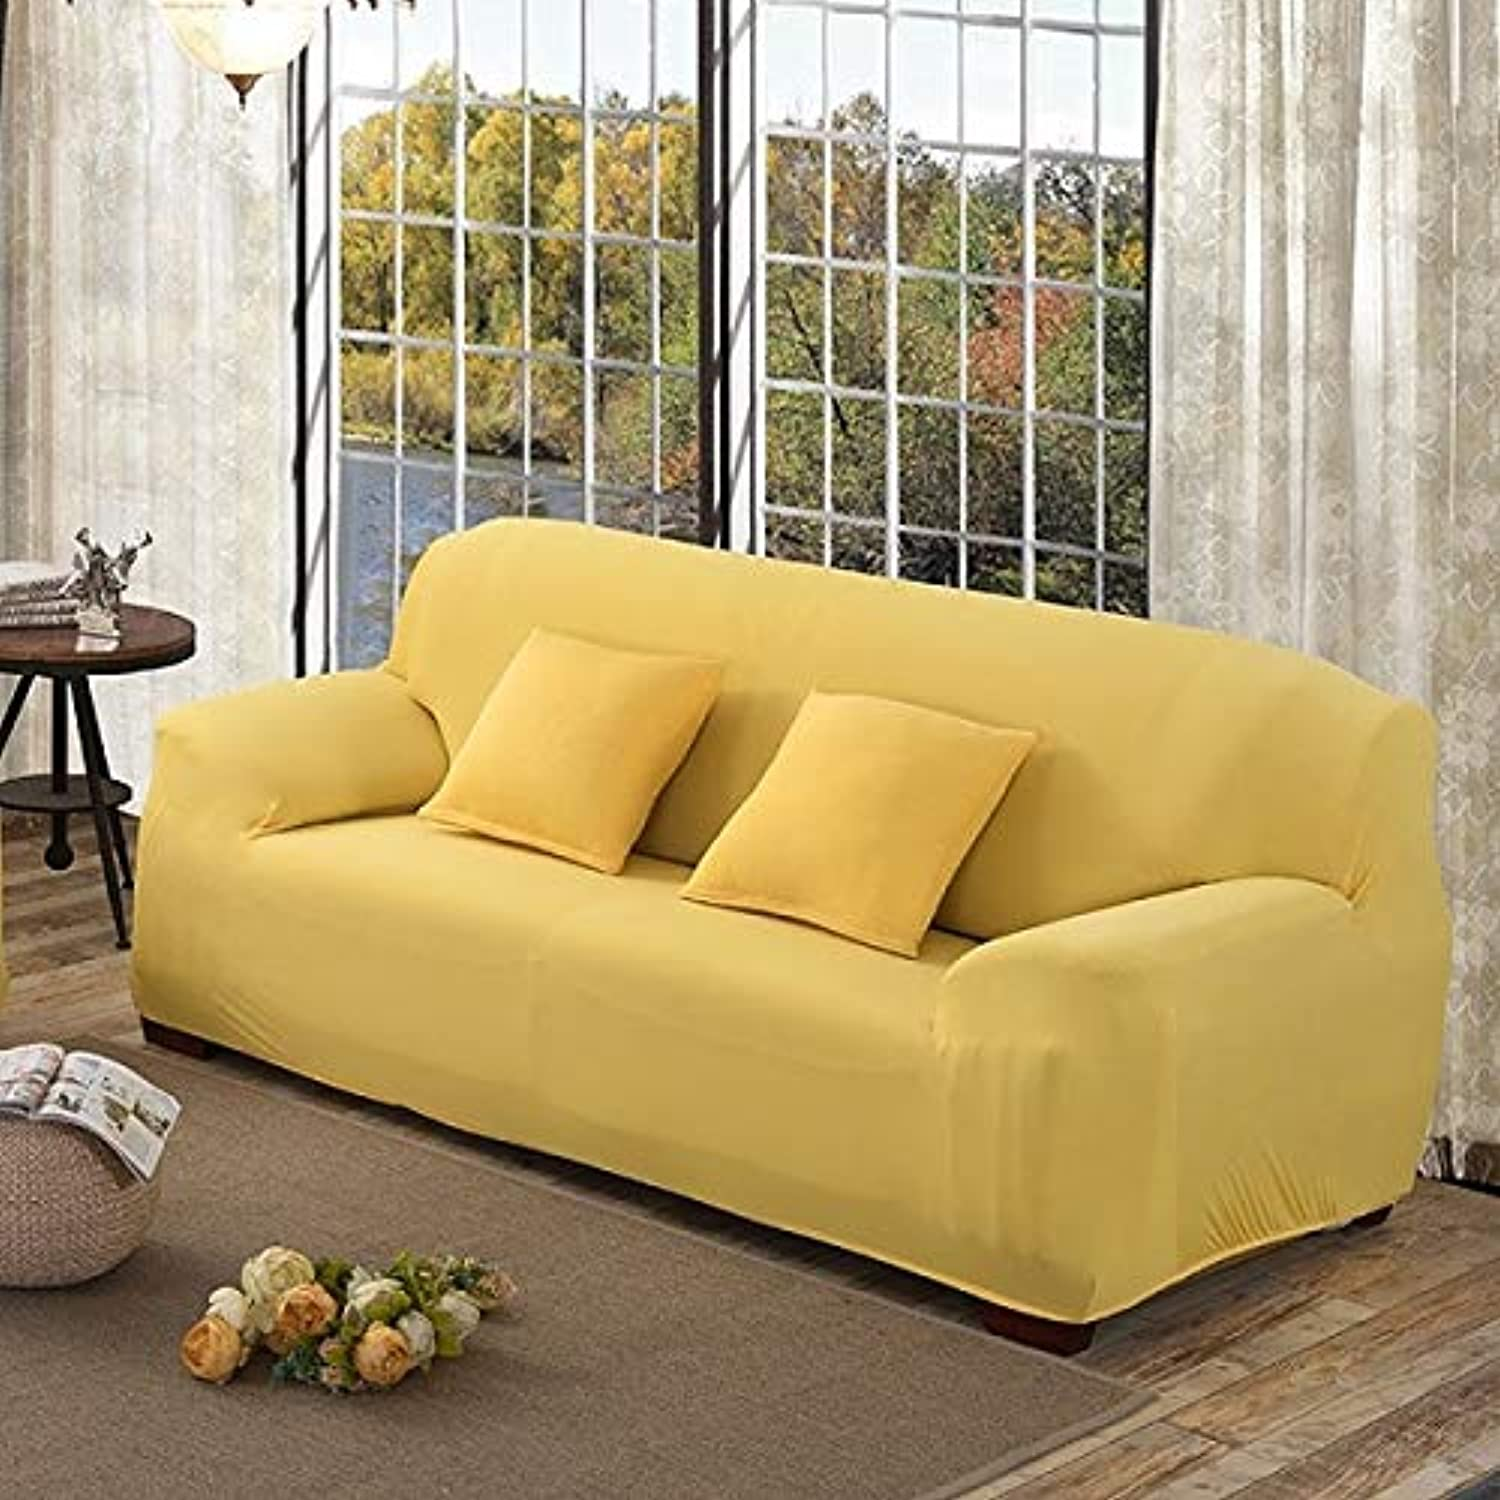 Furniture All-Inclusive Sofa Cover Sectional Covers Elastic Fabric Sofa Covers Printed Slipcover Couch Cover for Living Room   Yellow, Single Seat